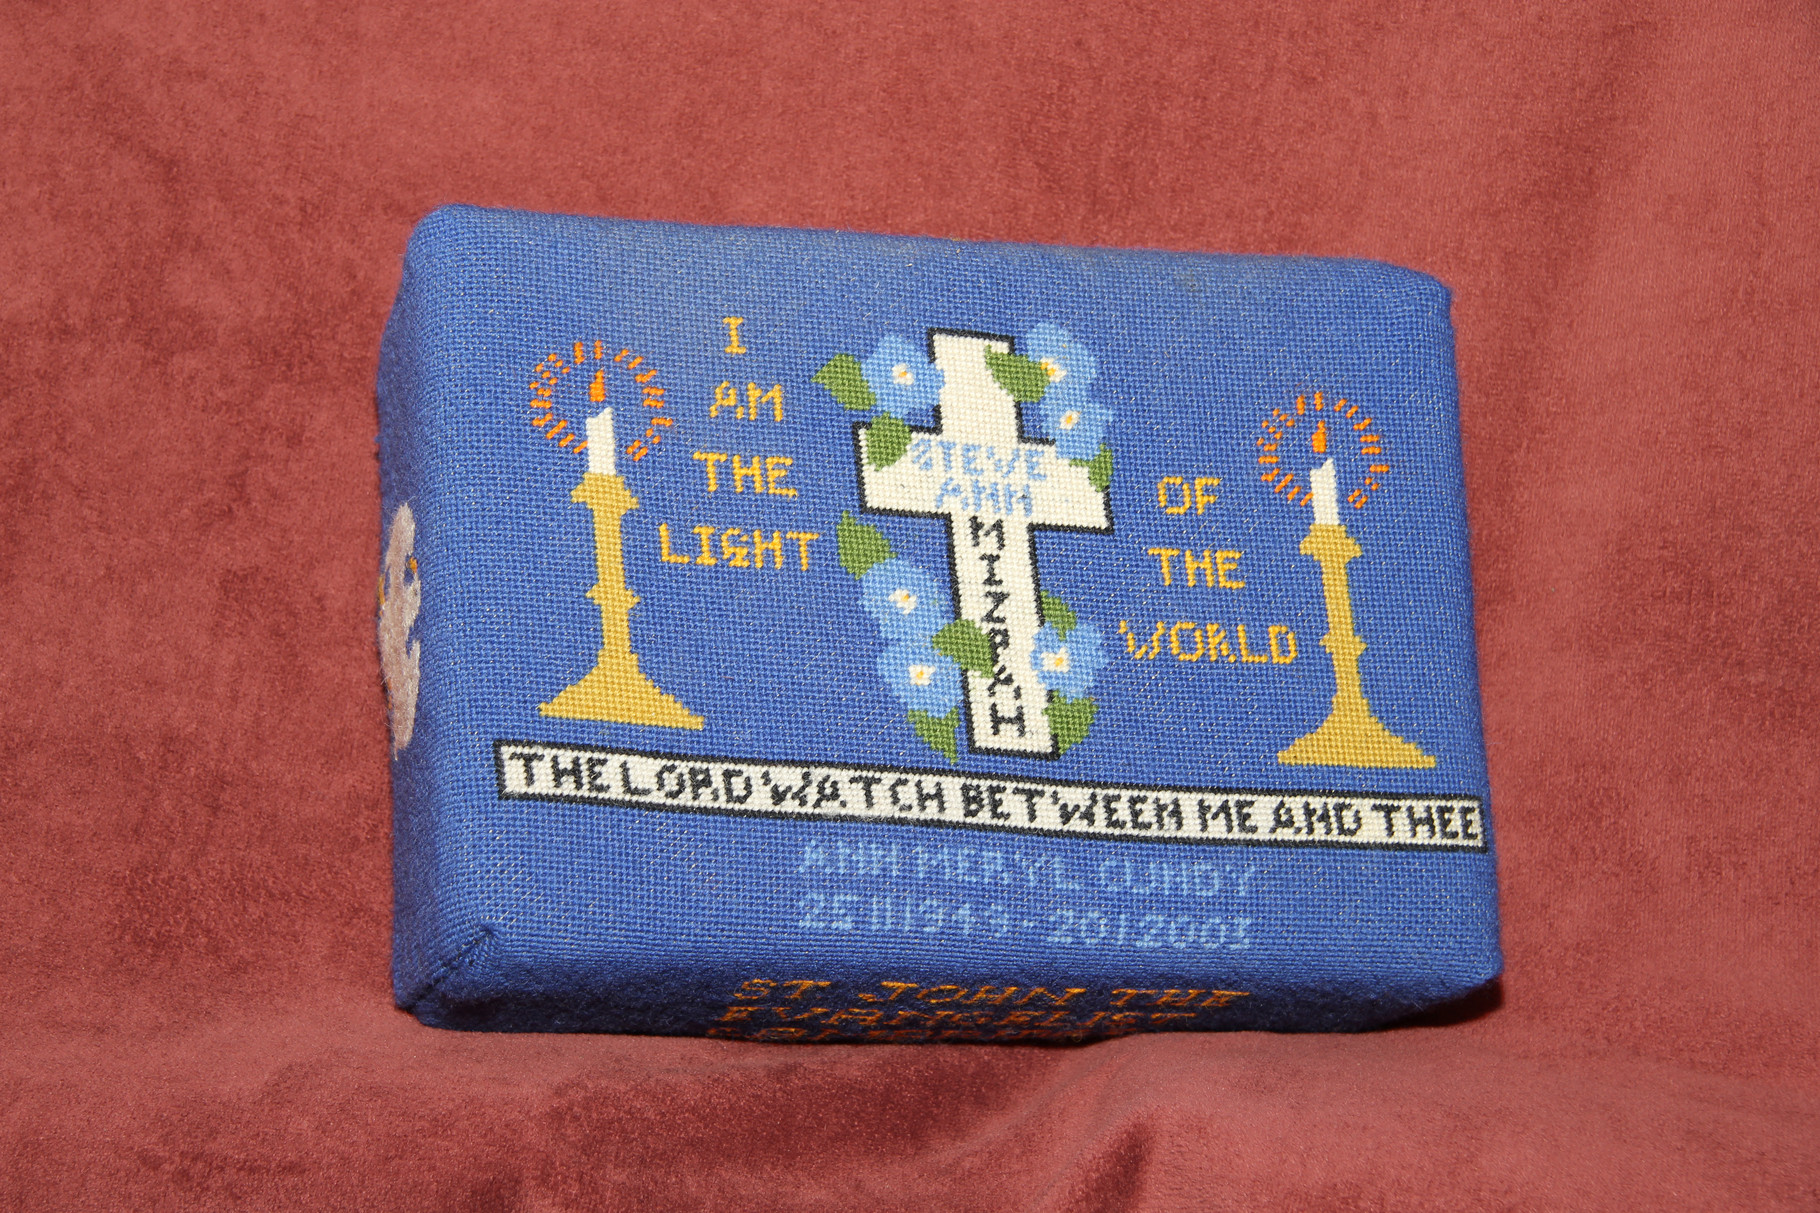 """63.  """"I am the Light of the world"""" in memory of  Ann Meryl Cundy  (1949-2003) donated by her husband and worked by Beryl Johnson. The design is based on an Easter card with the theme of everlasting love. The scriptural text MIZPAH comes from Genesis 31.49"""